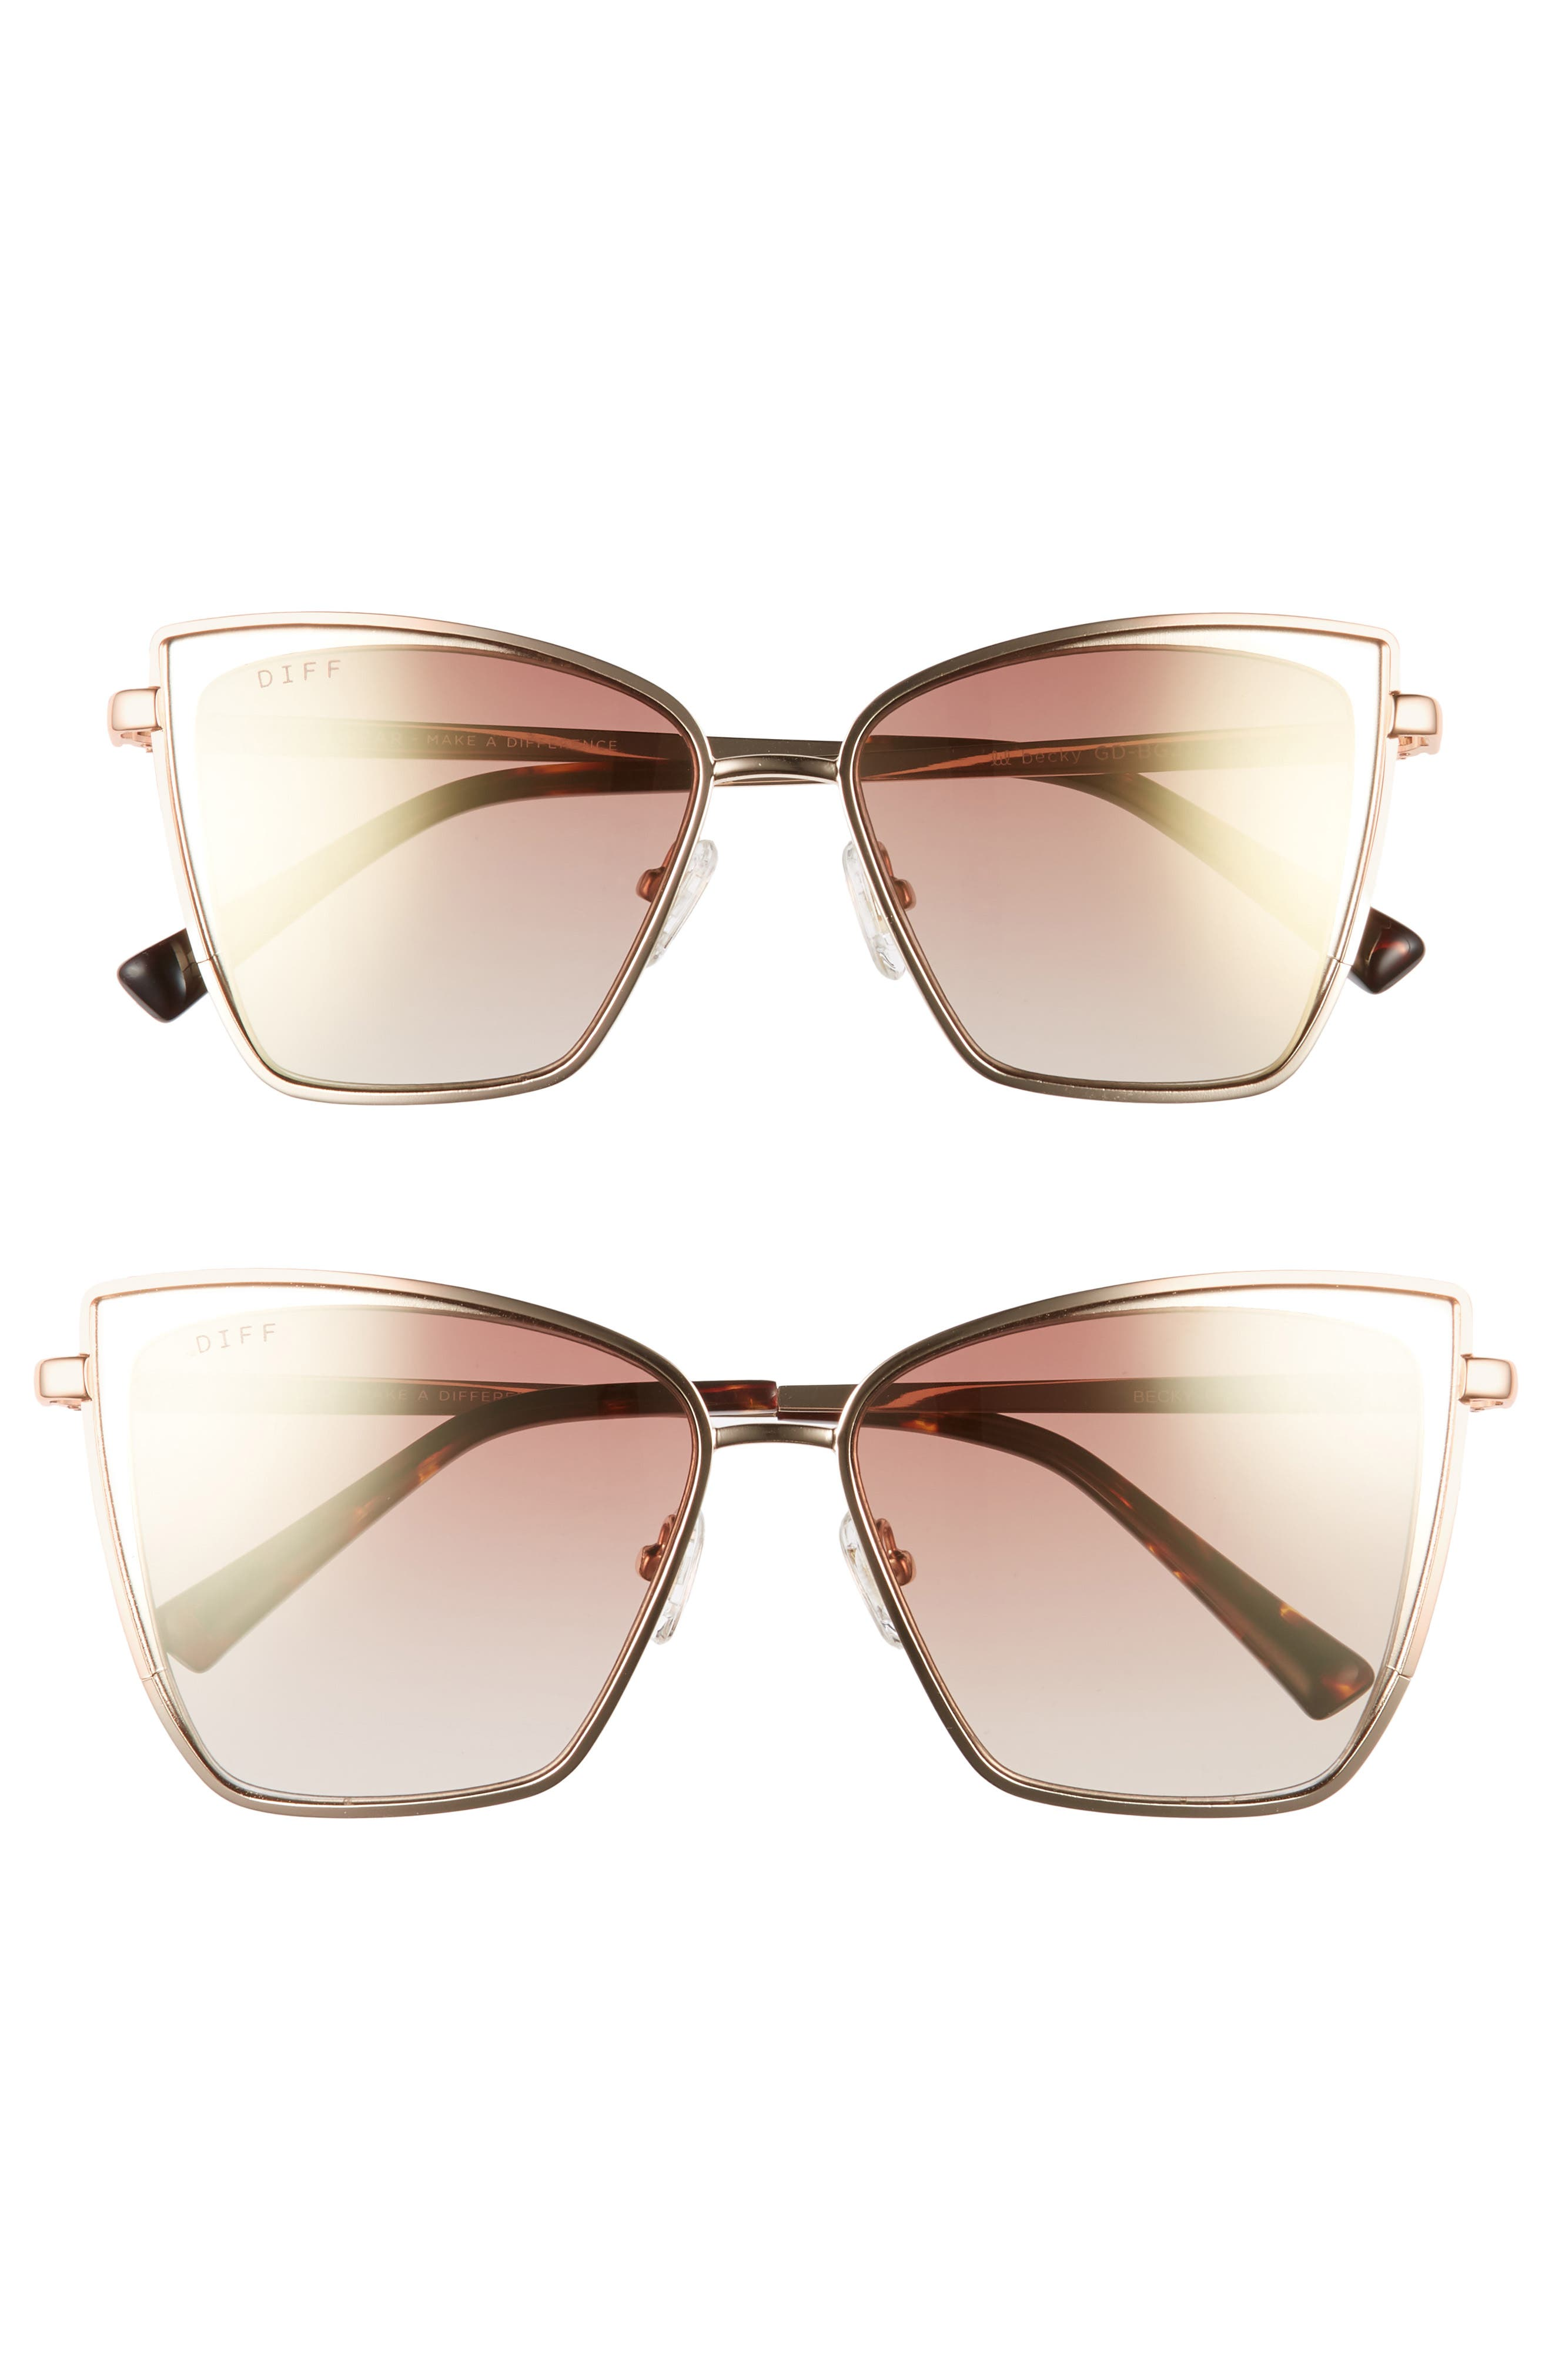 DIFF Mommy & Me Becky 2-Pack Cat Eye Sunglasses ($135 Value)